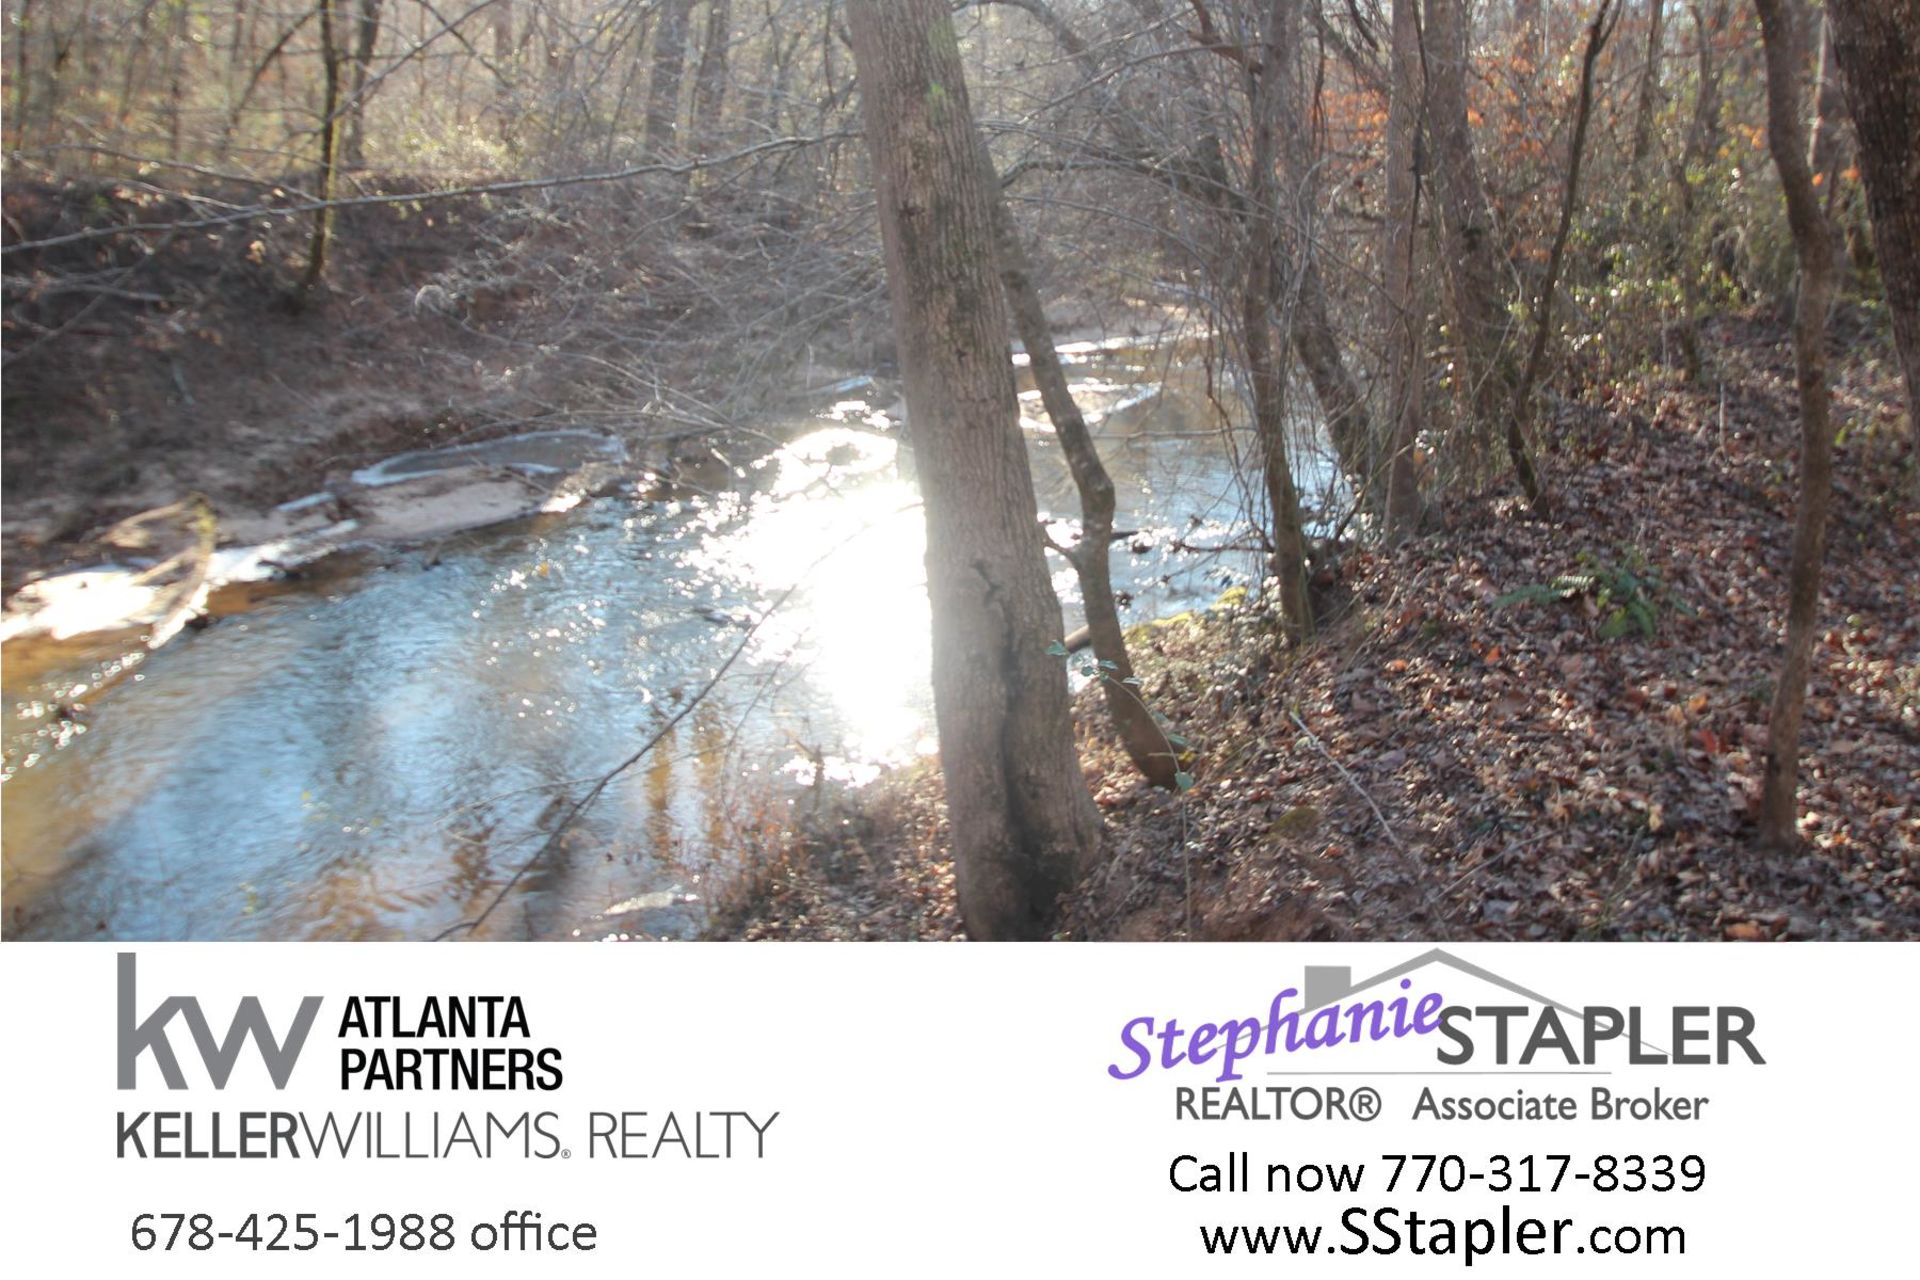 LAND FOR SALE Price Reduced! Jackson County 9.38 Acres, Flowing Creek & Level Homesite